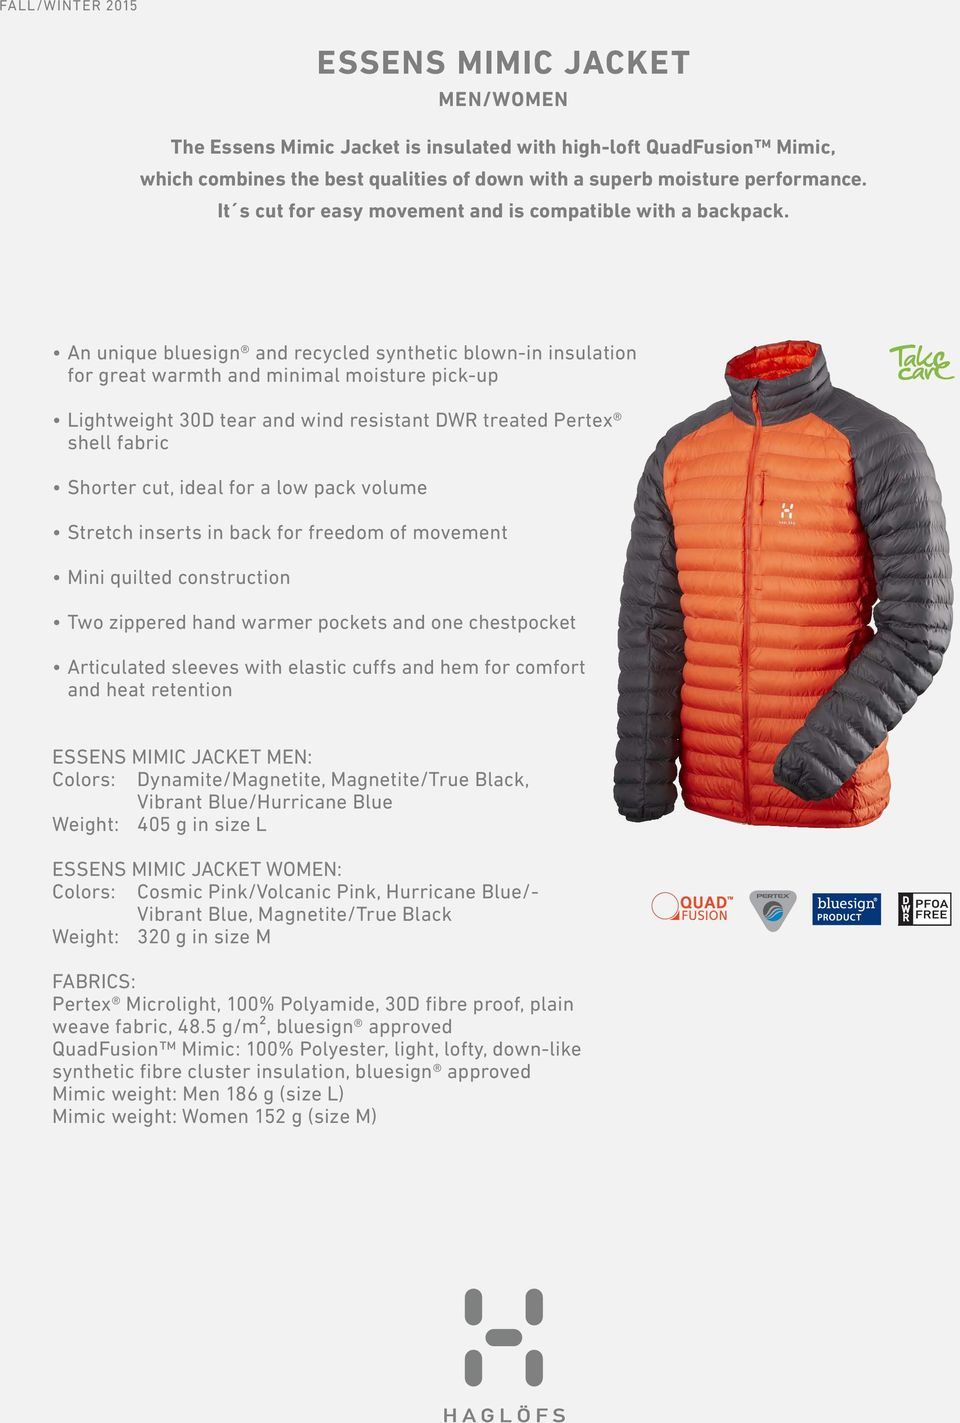 An unique bluesign and recycled synthetic blown-in insulation for great warmth and minimal moisture pick-up Lightweight 30D tear and wind resistant DWR treated Pertex shell fabric Shorter cut, ideal